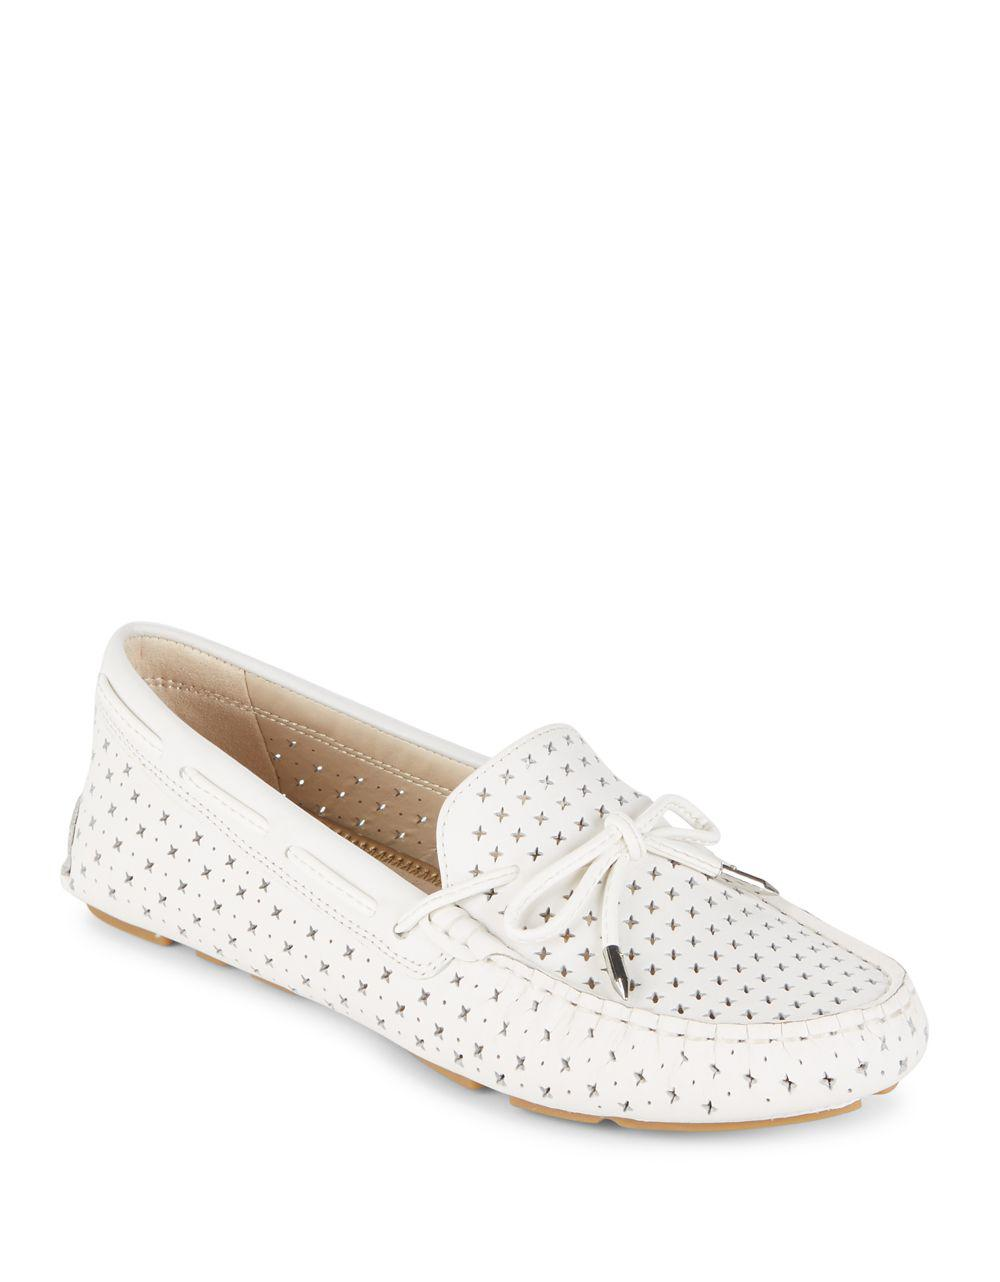 Florentine Sam In White Perforated Edelman Lyst Loafers P4wWqEPv ab2212e0c0d1